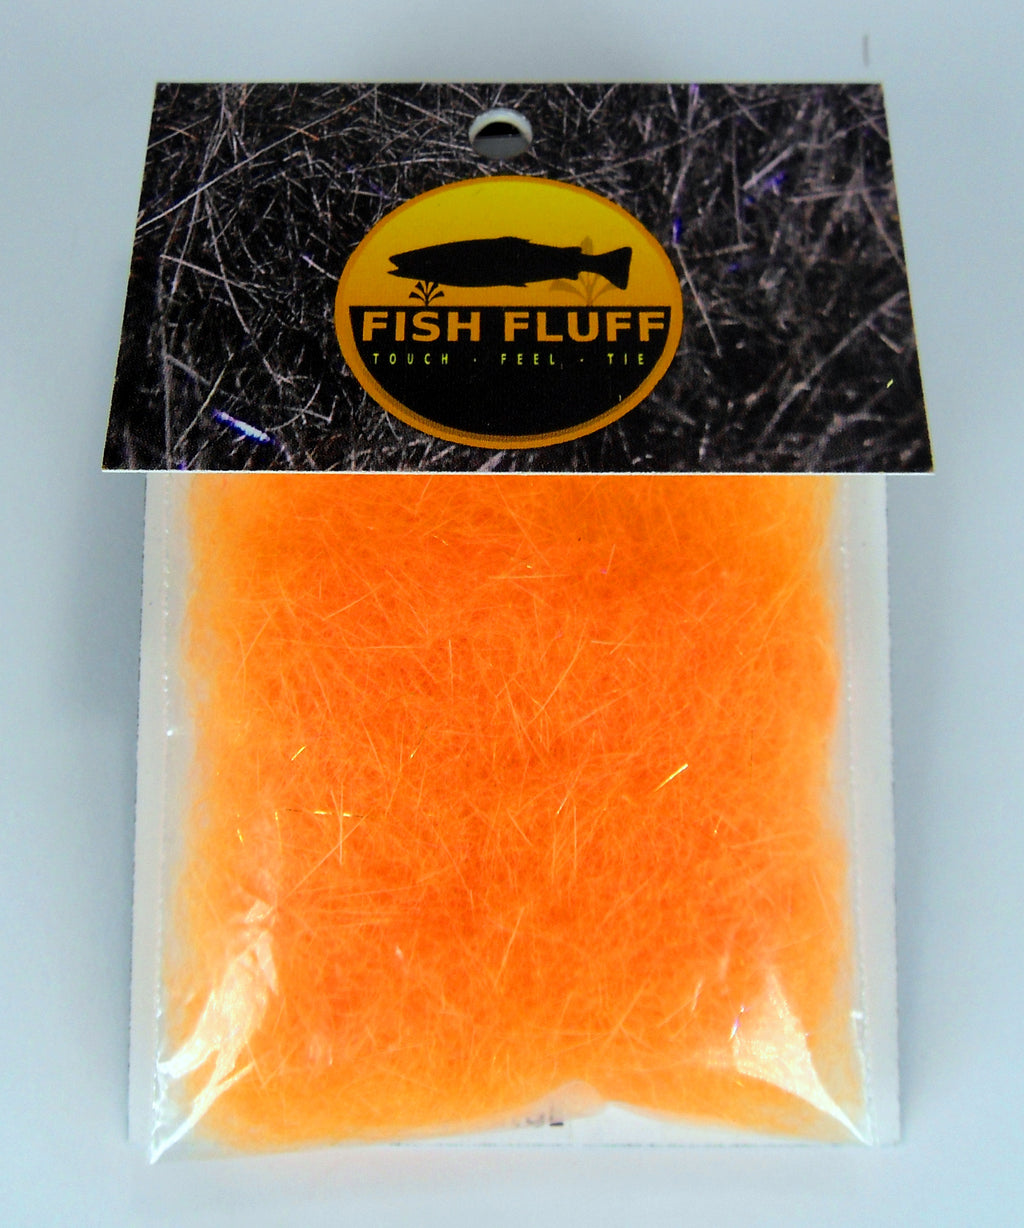 FISH FLUFF HOT SPOT DUB